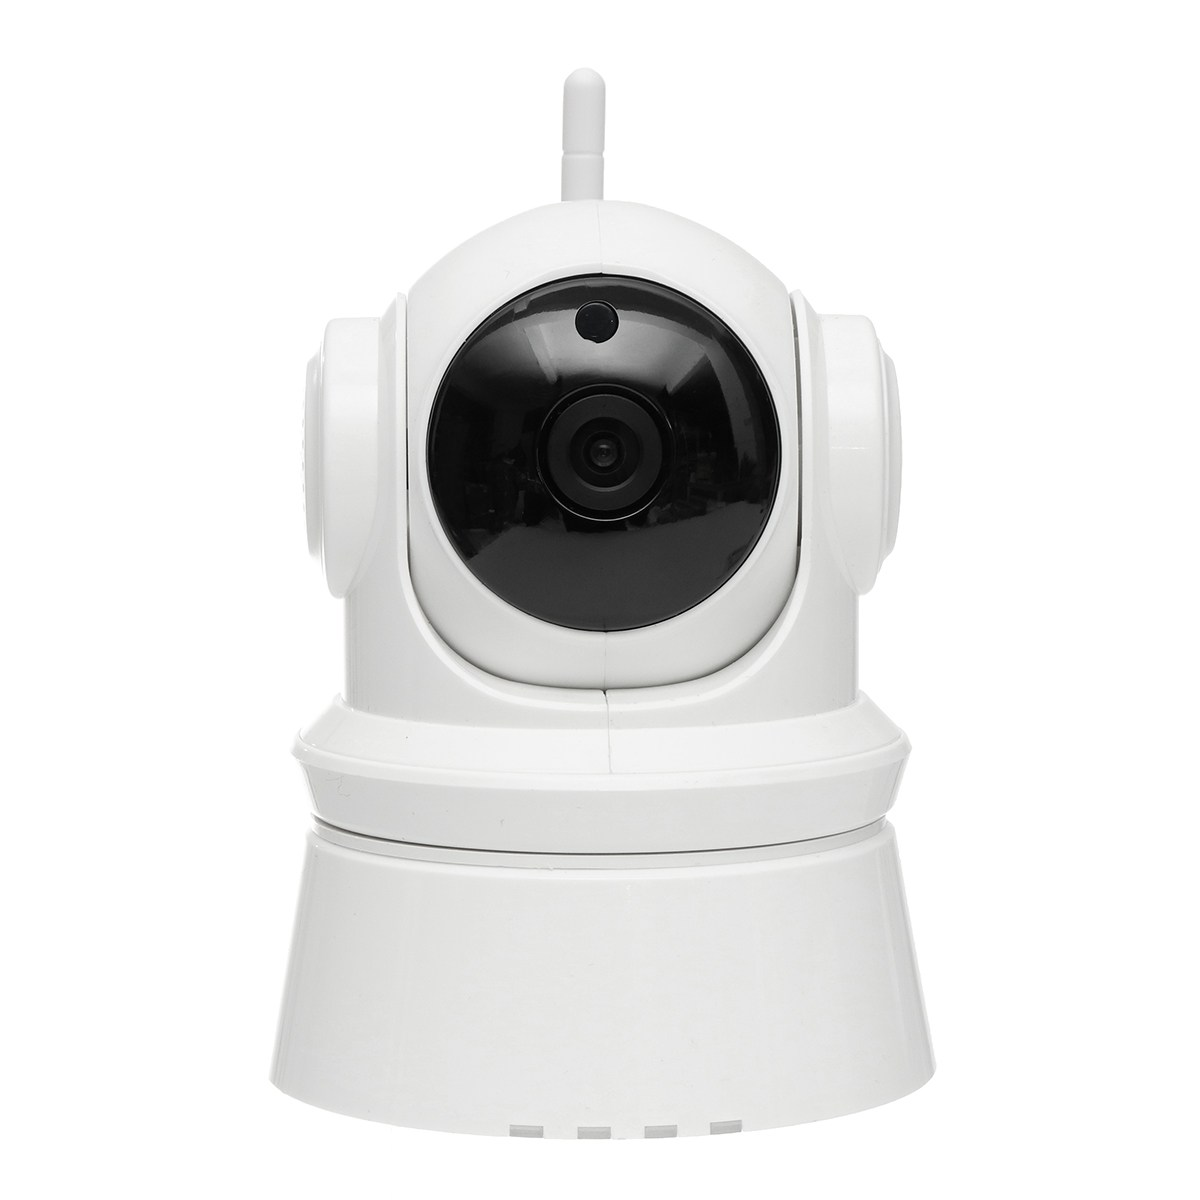 Eletronic 1080P Wireless Camera Baby Monitor electronic WiFi Audio monitors IP Camera with Talk and listen Camera<br>